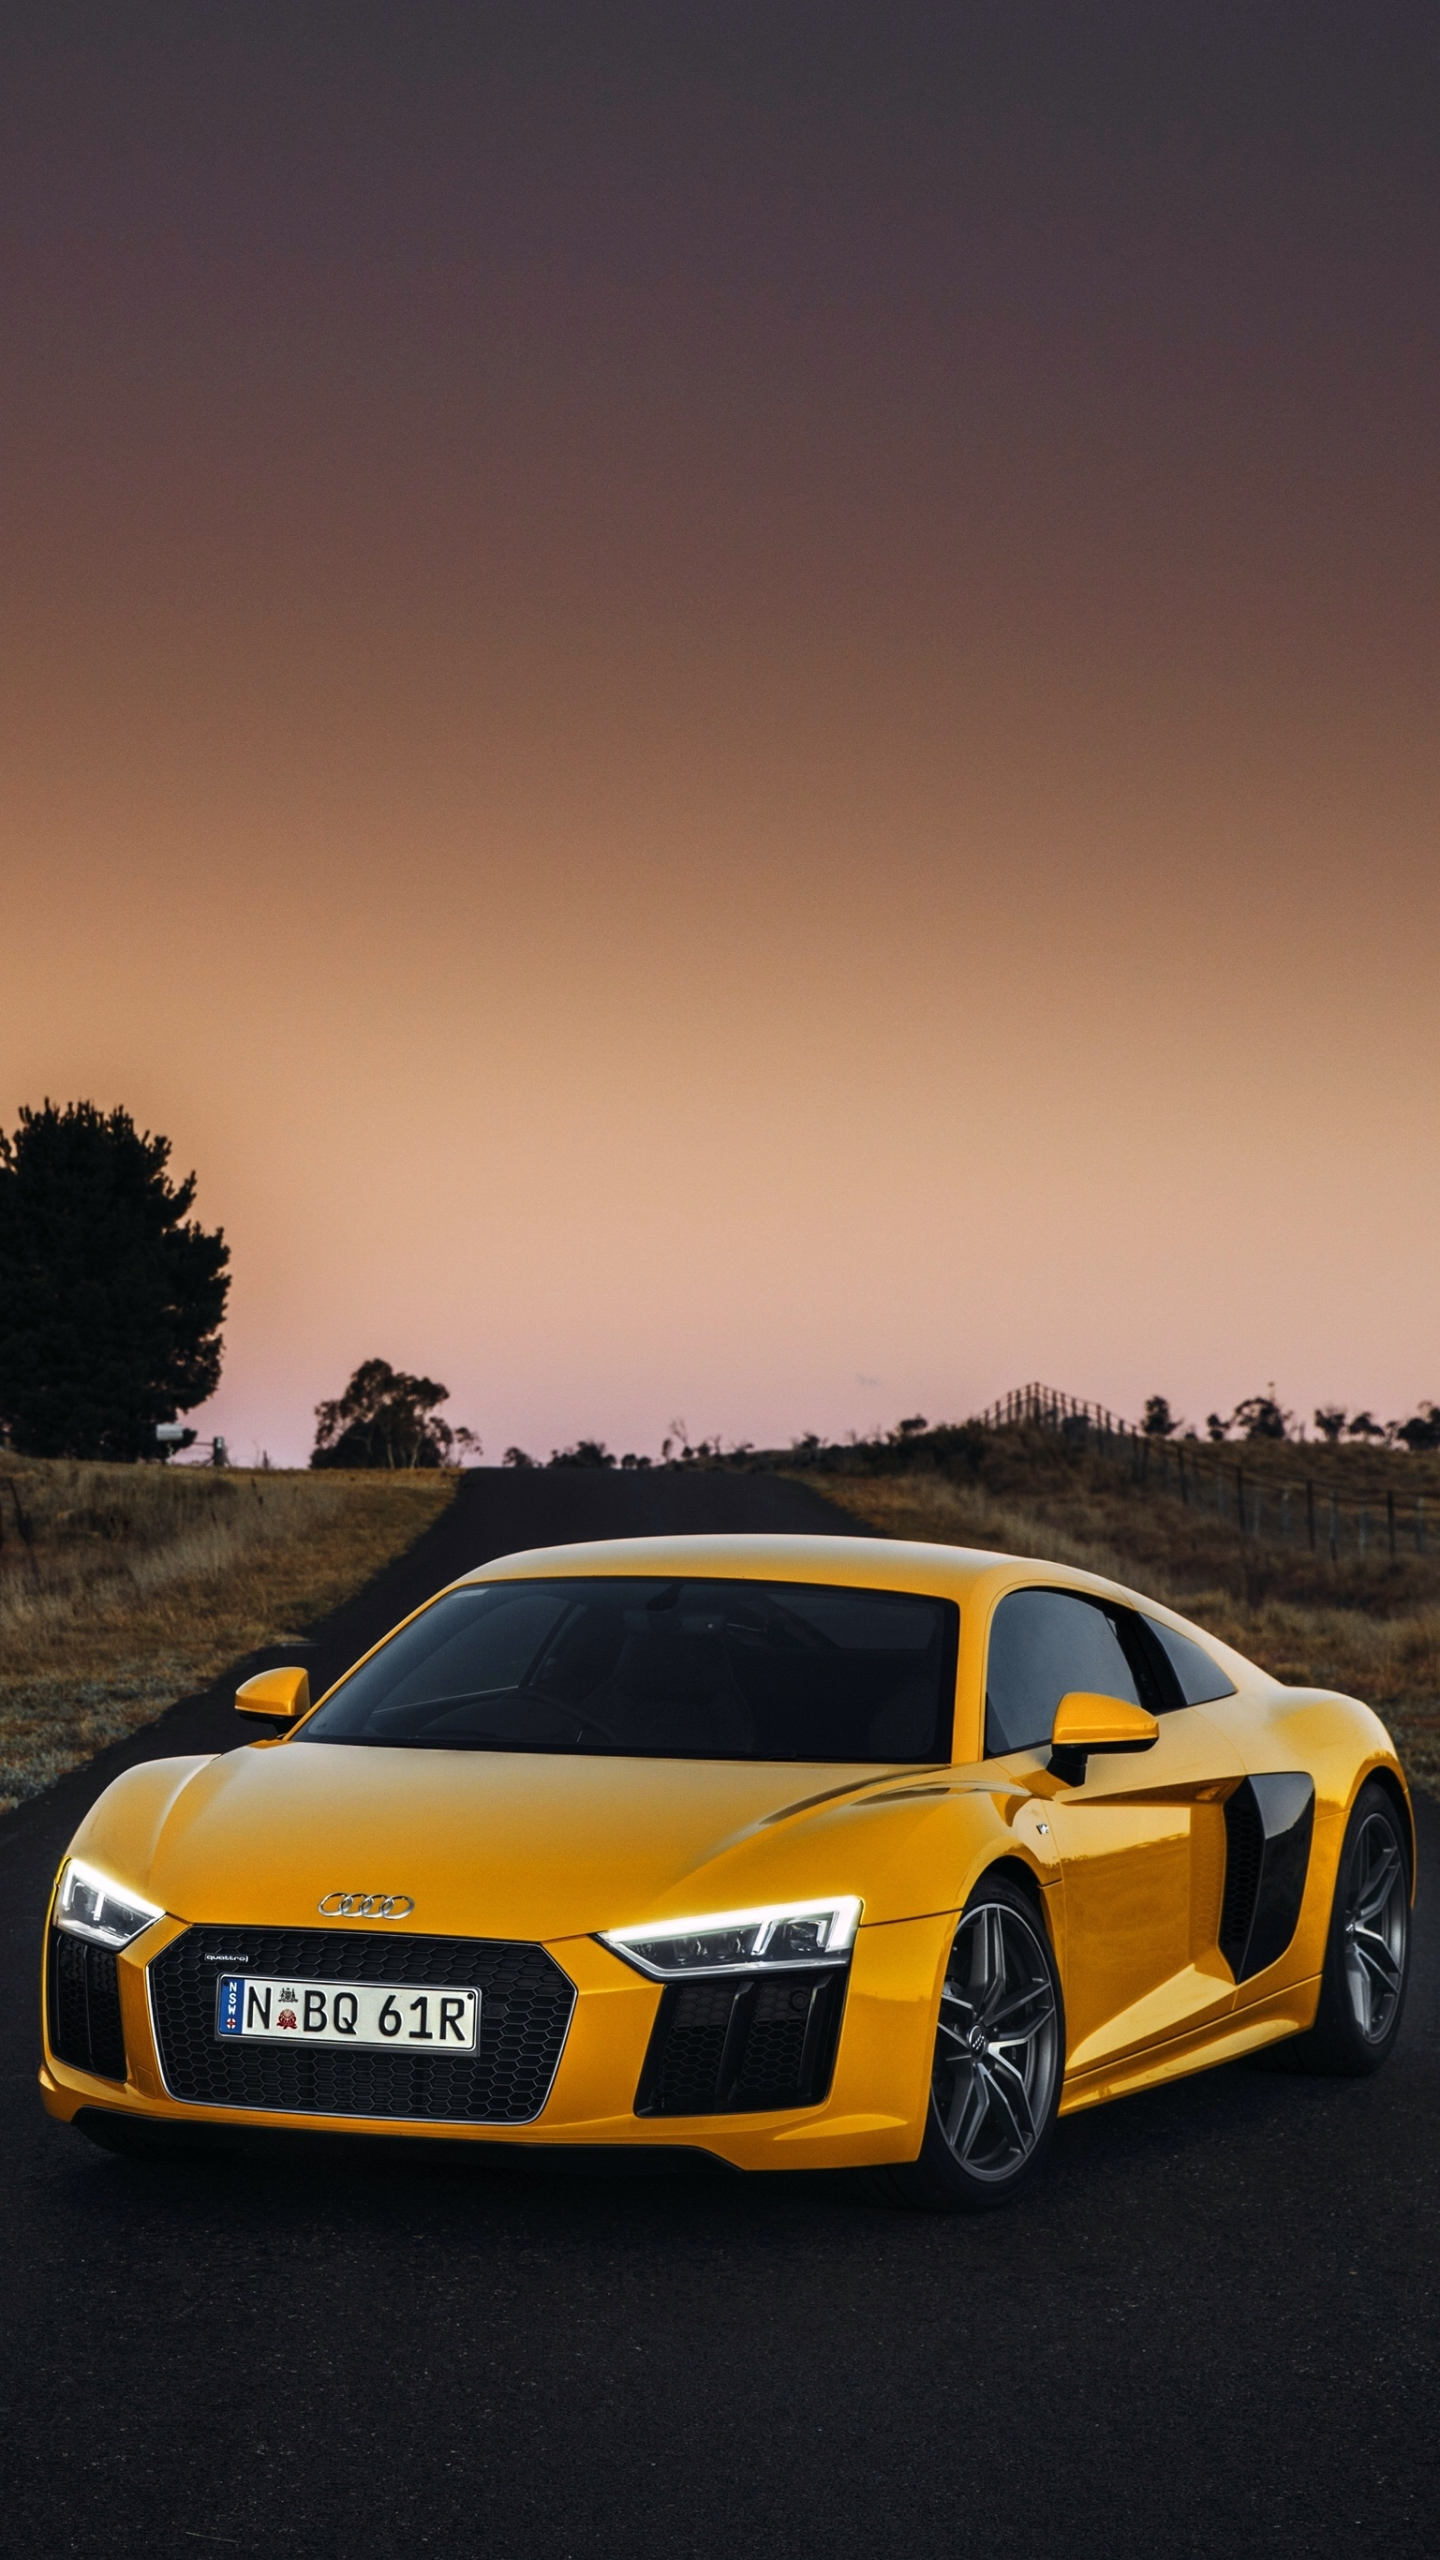 Vehicles Audi R8 1080x1920 Mobile Wallpaper